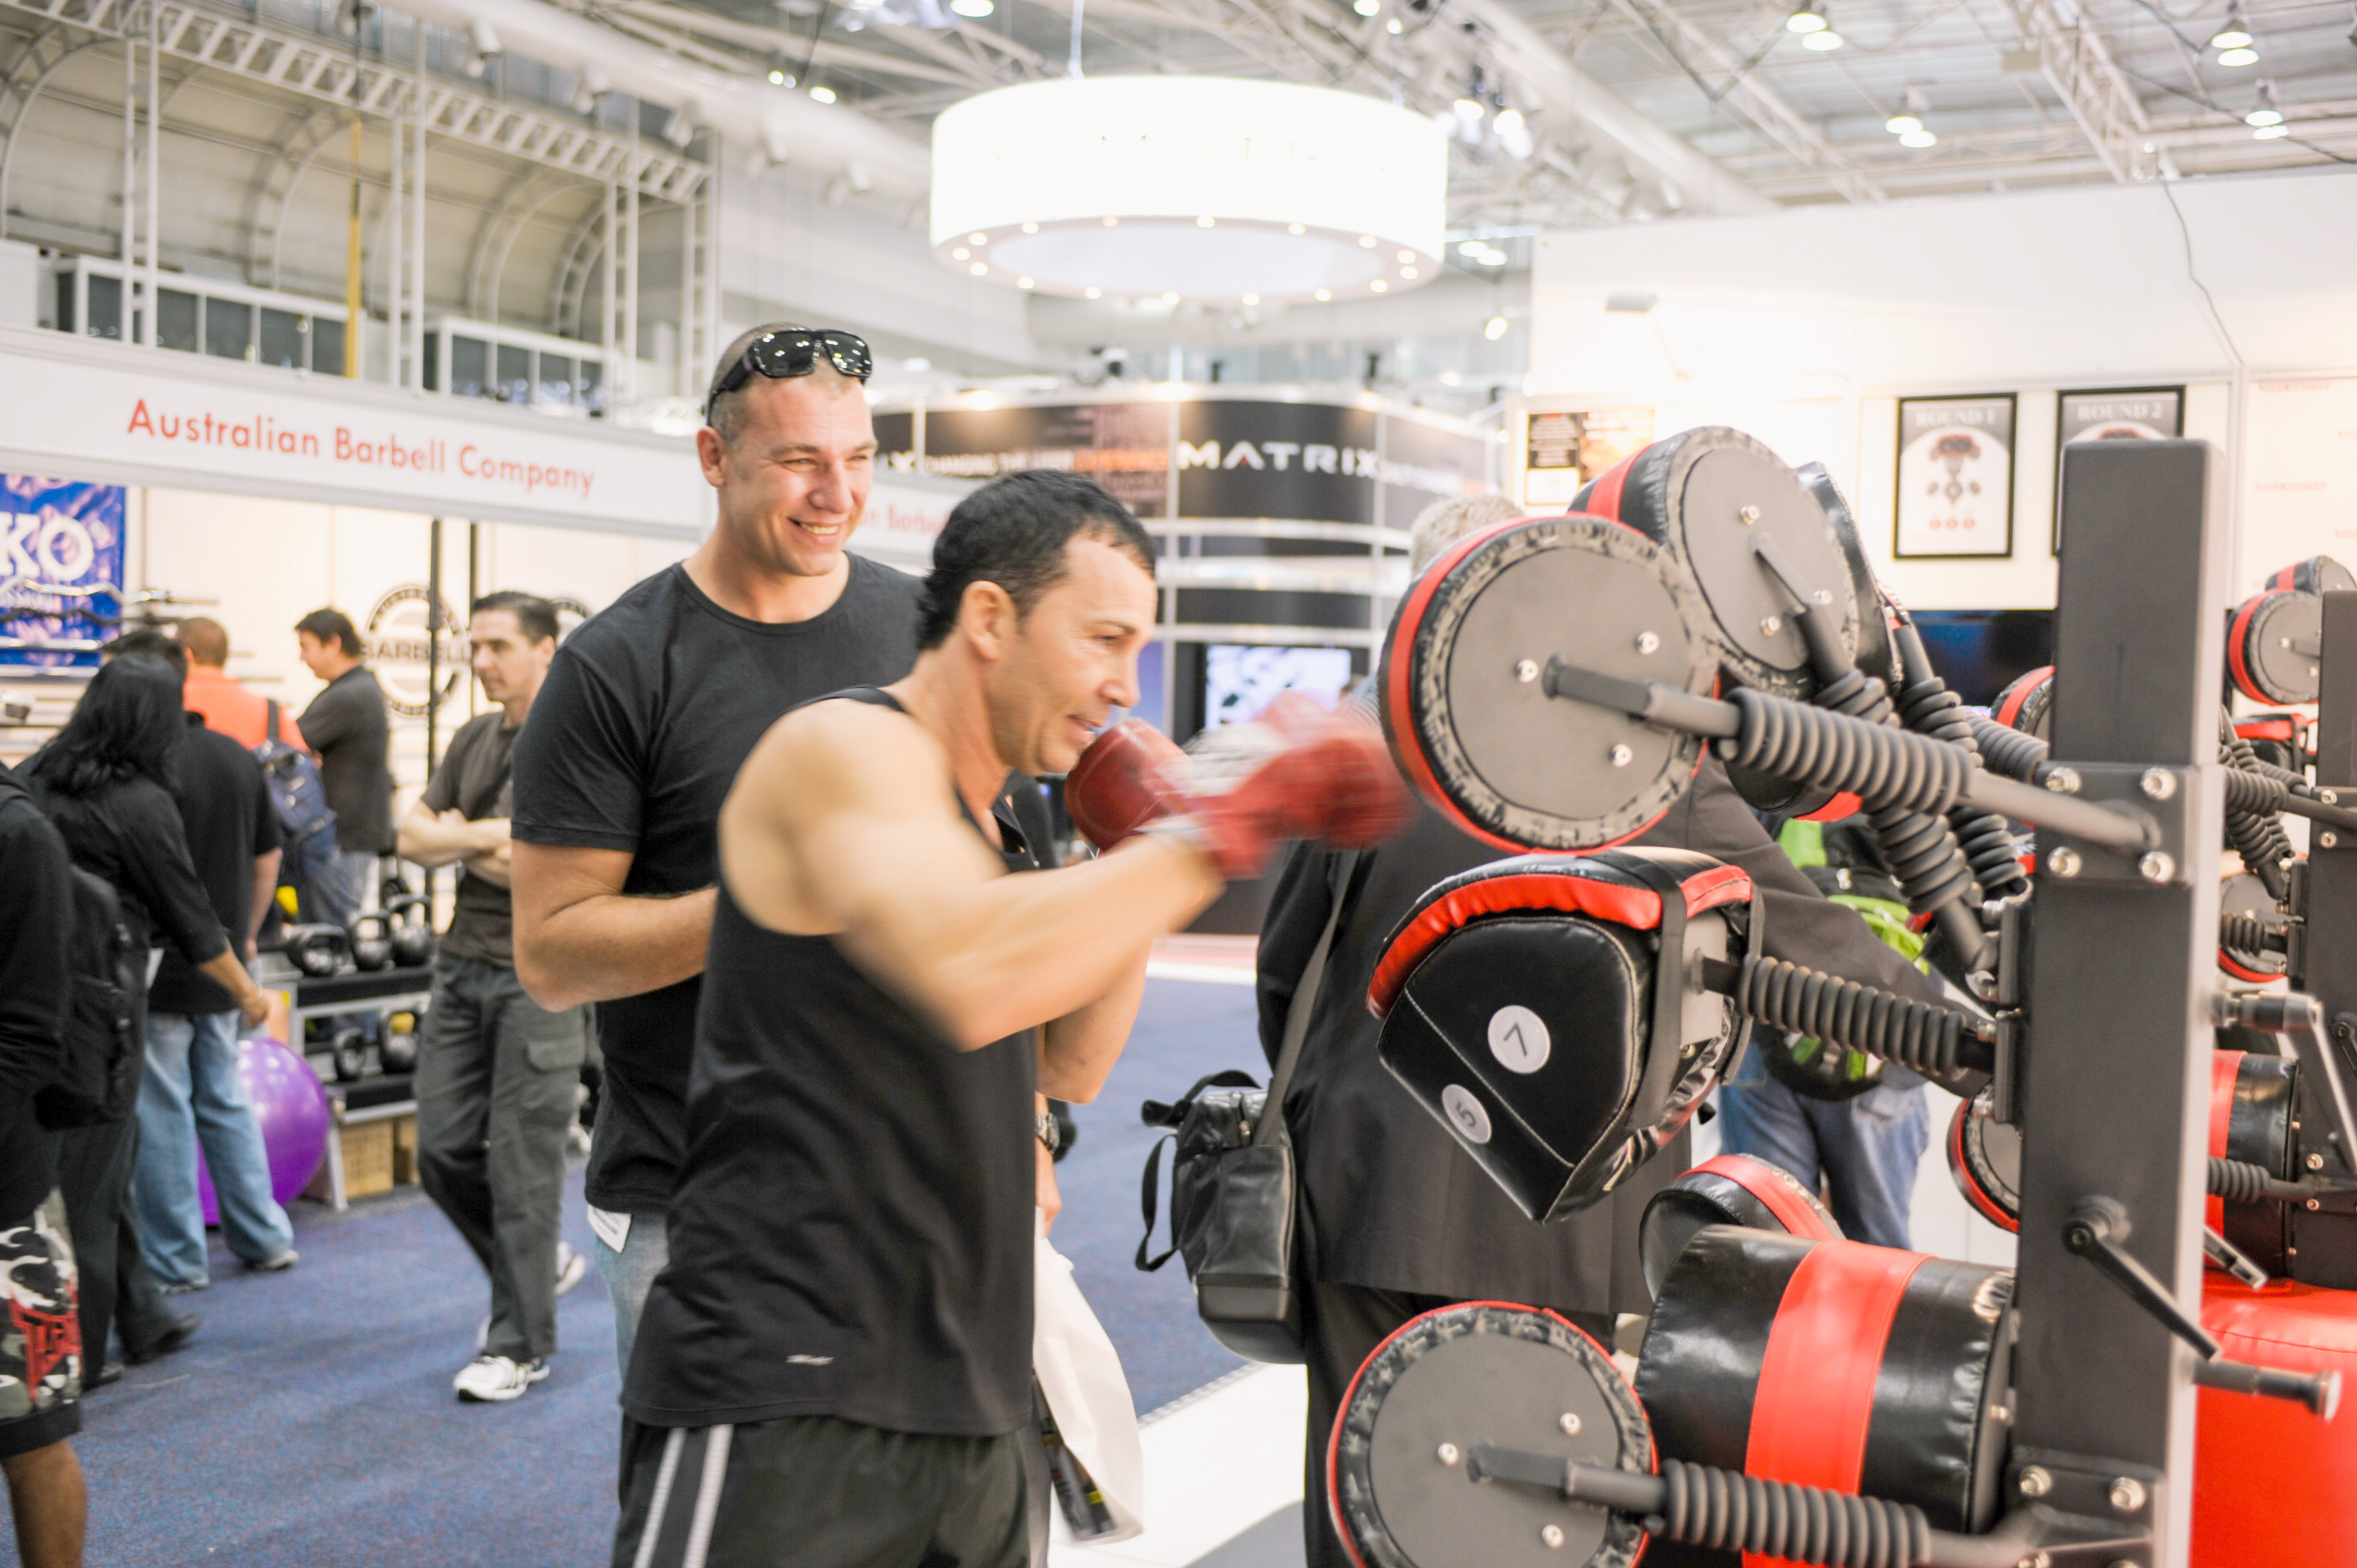 'Gym growth to slow as spending drops' by Sportslink in Cooran QLD